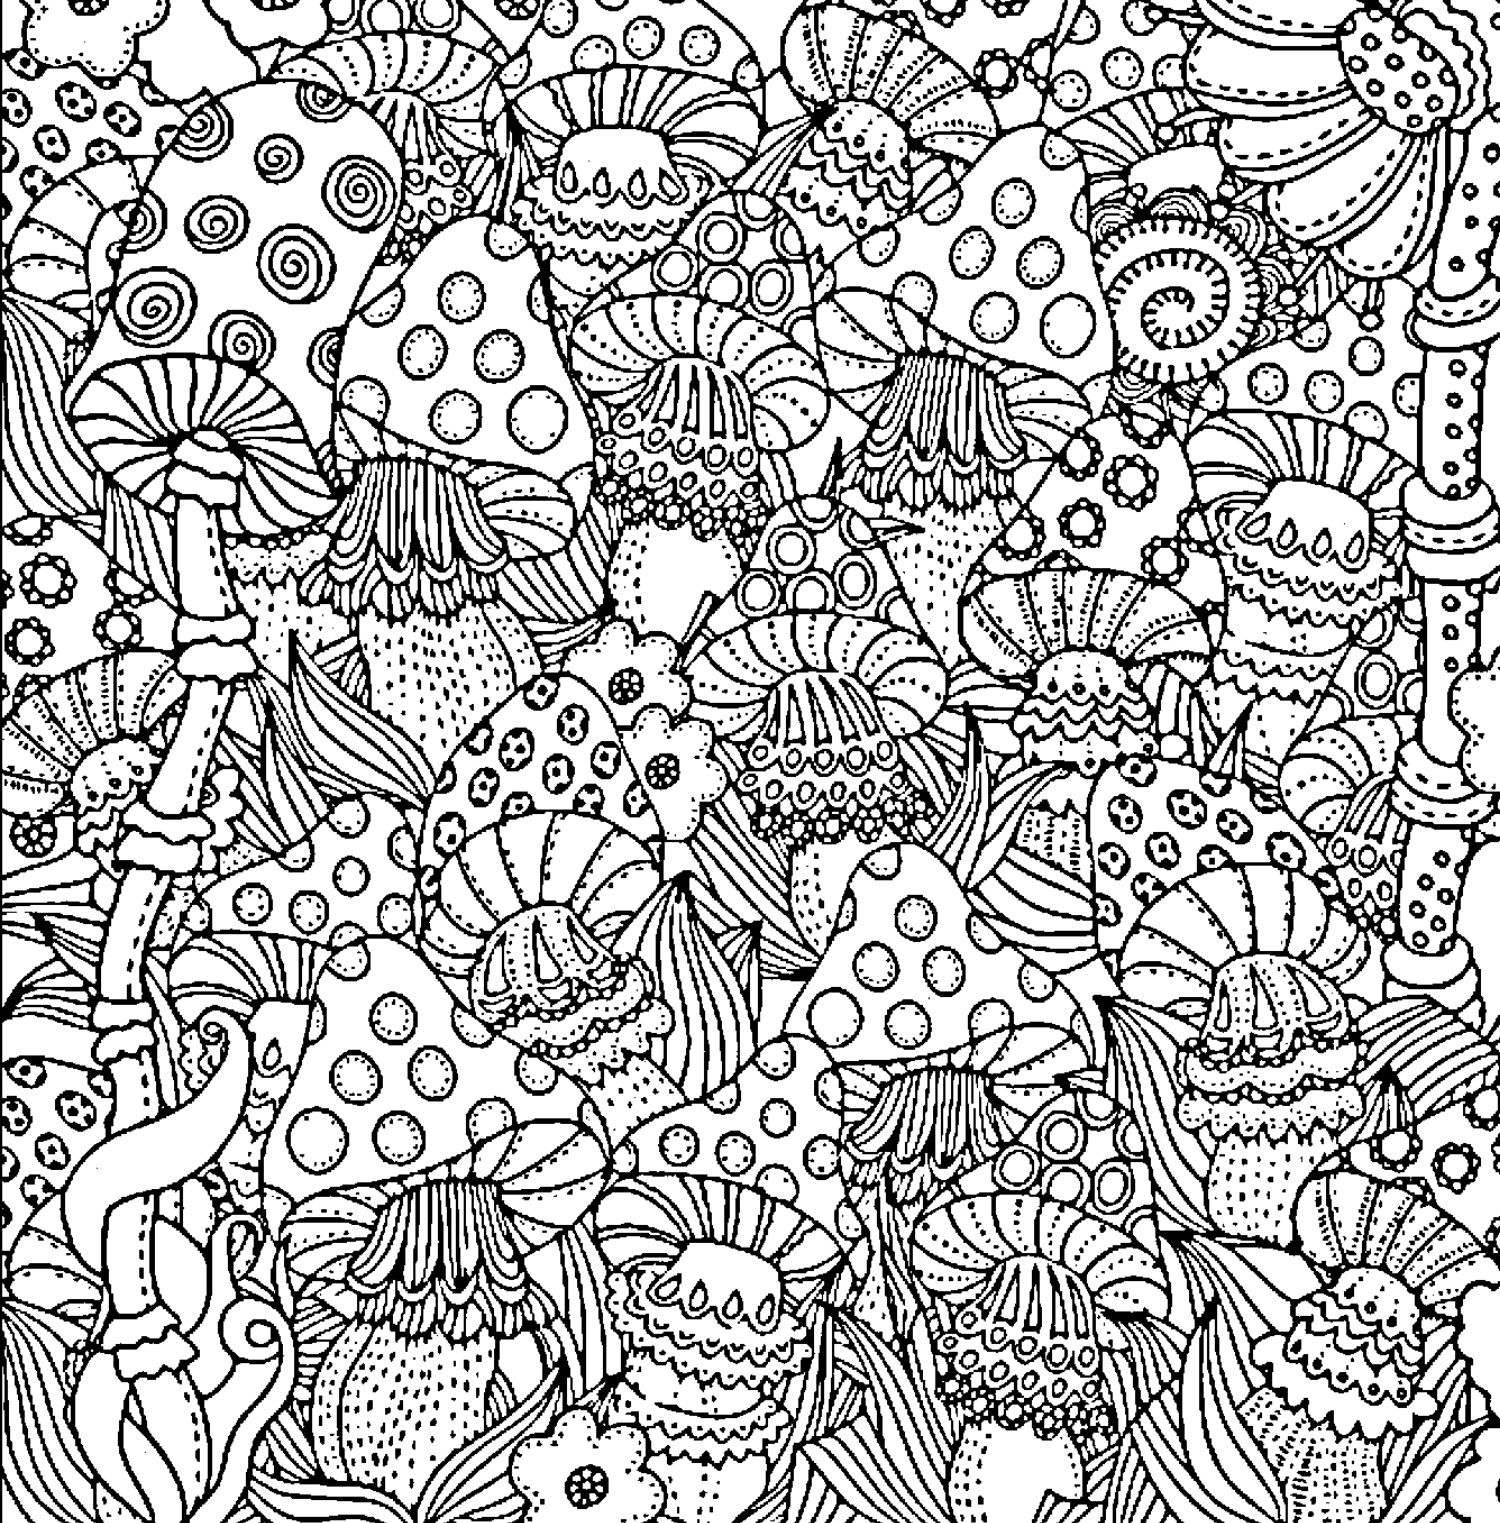 Difficult Coloring Pages For Adults Mushroom Coloring Page Designs Coloring Books Coloring Canvas Coloring Books